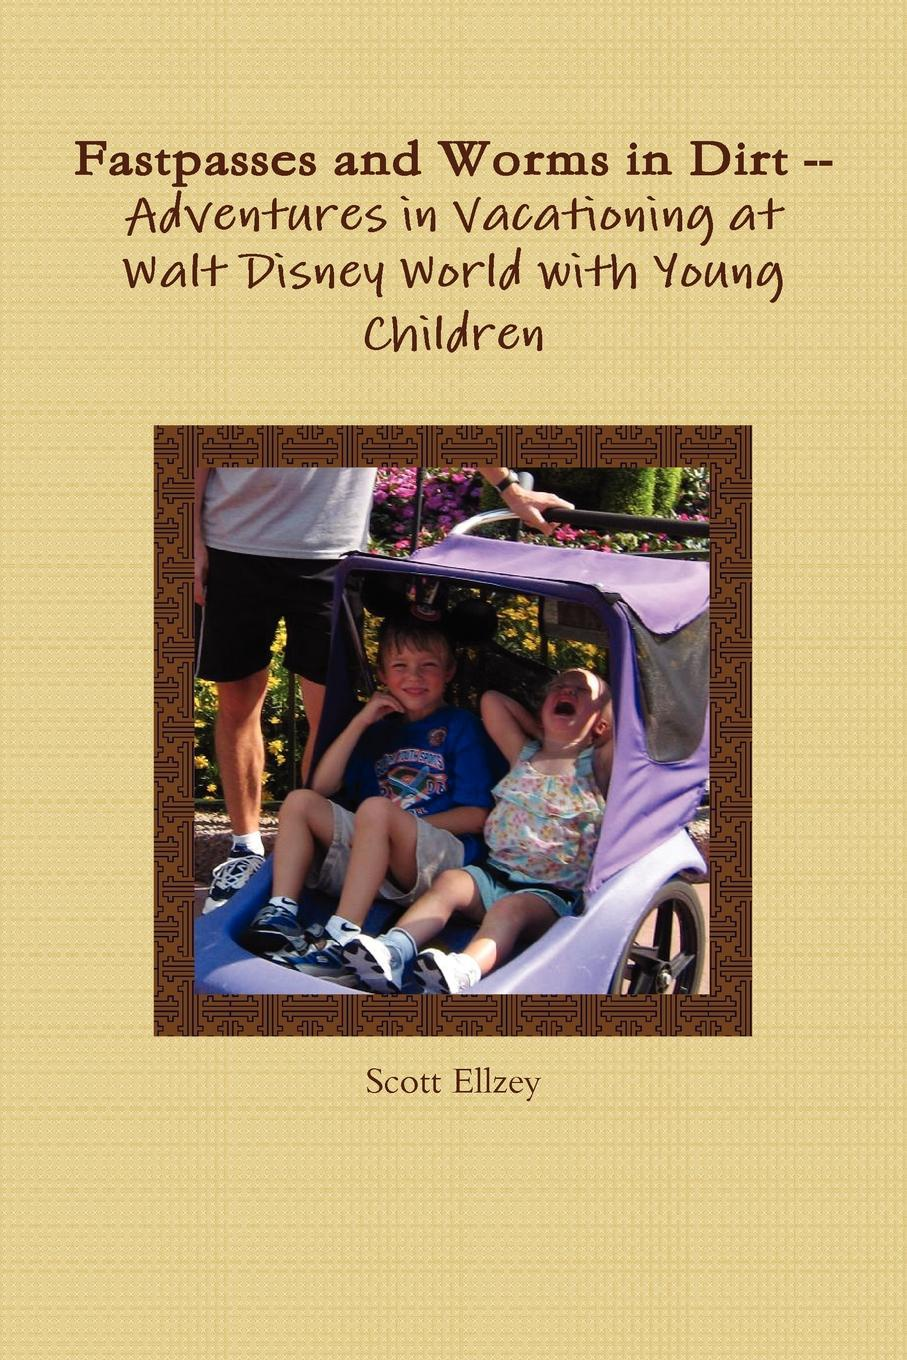 Scott Ellzey Fastpasses and Worms in Dirt -- Adventures in Vacationing at Walt Disney World with Young Children